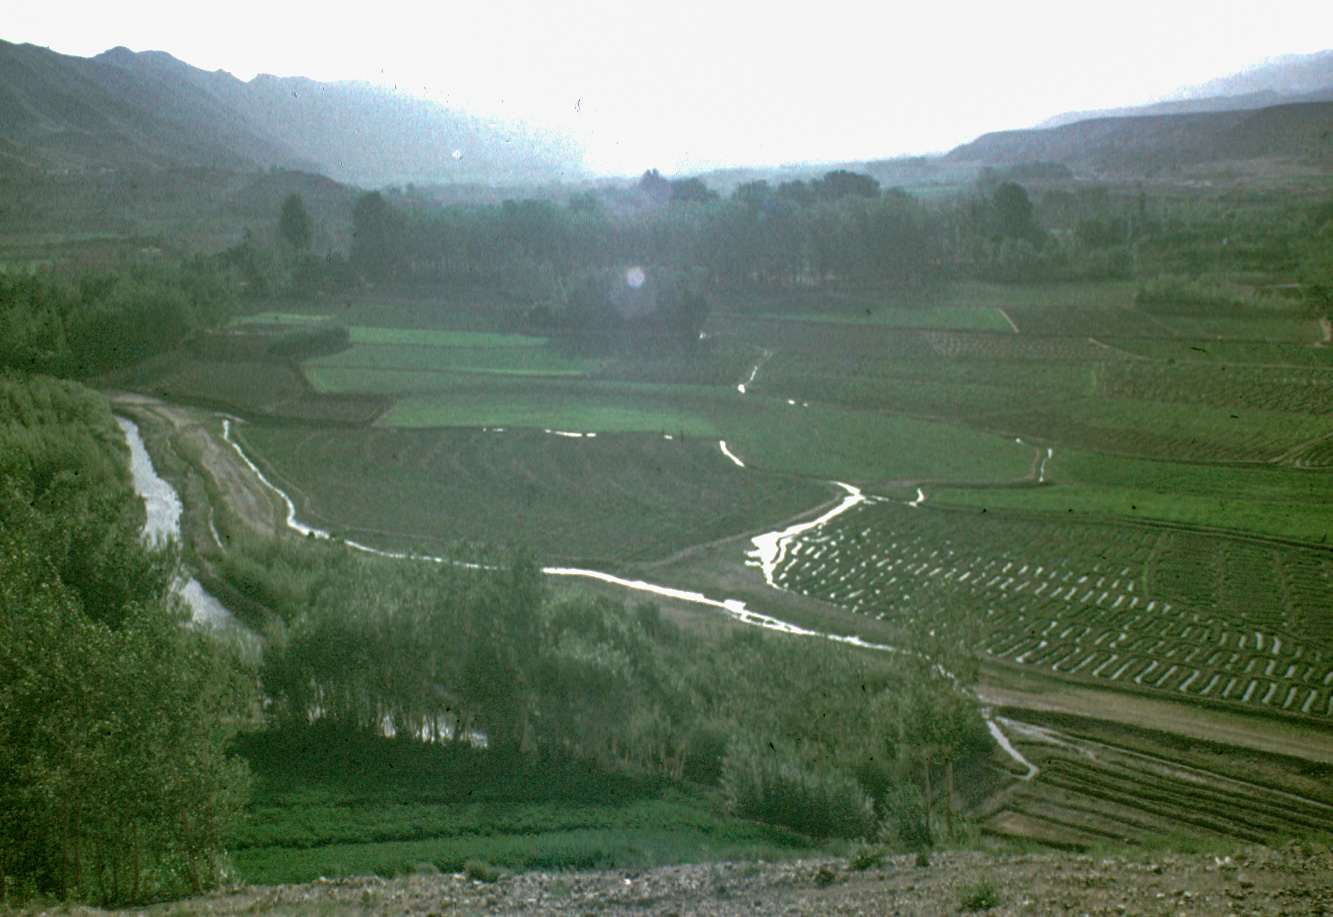 landscape photograph made near Bamiyan, Afghanistan about 1970